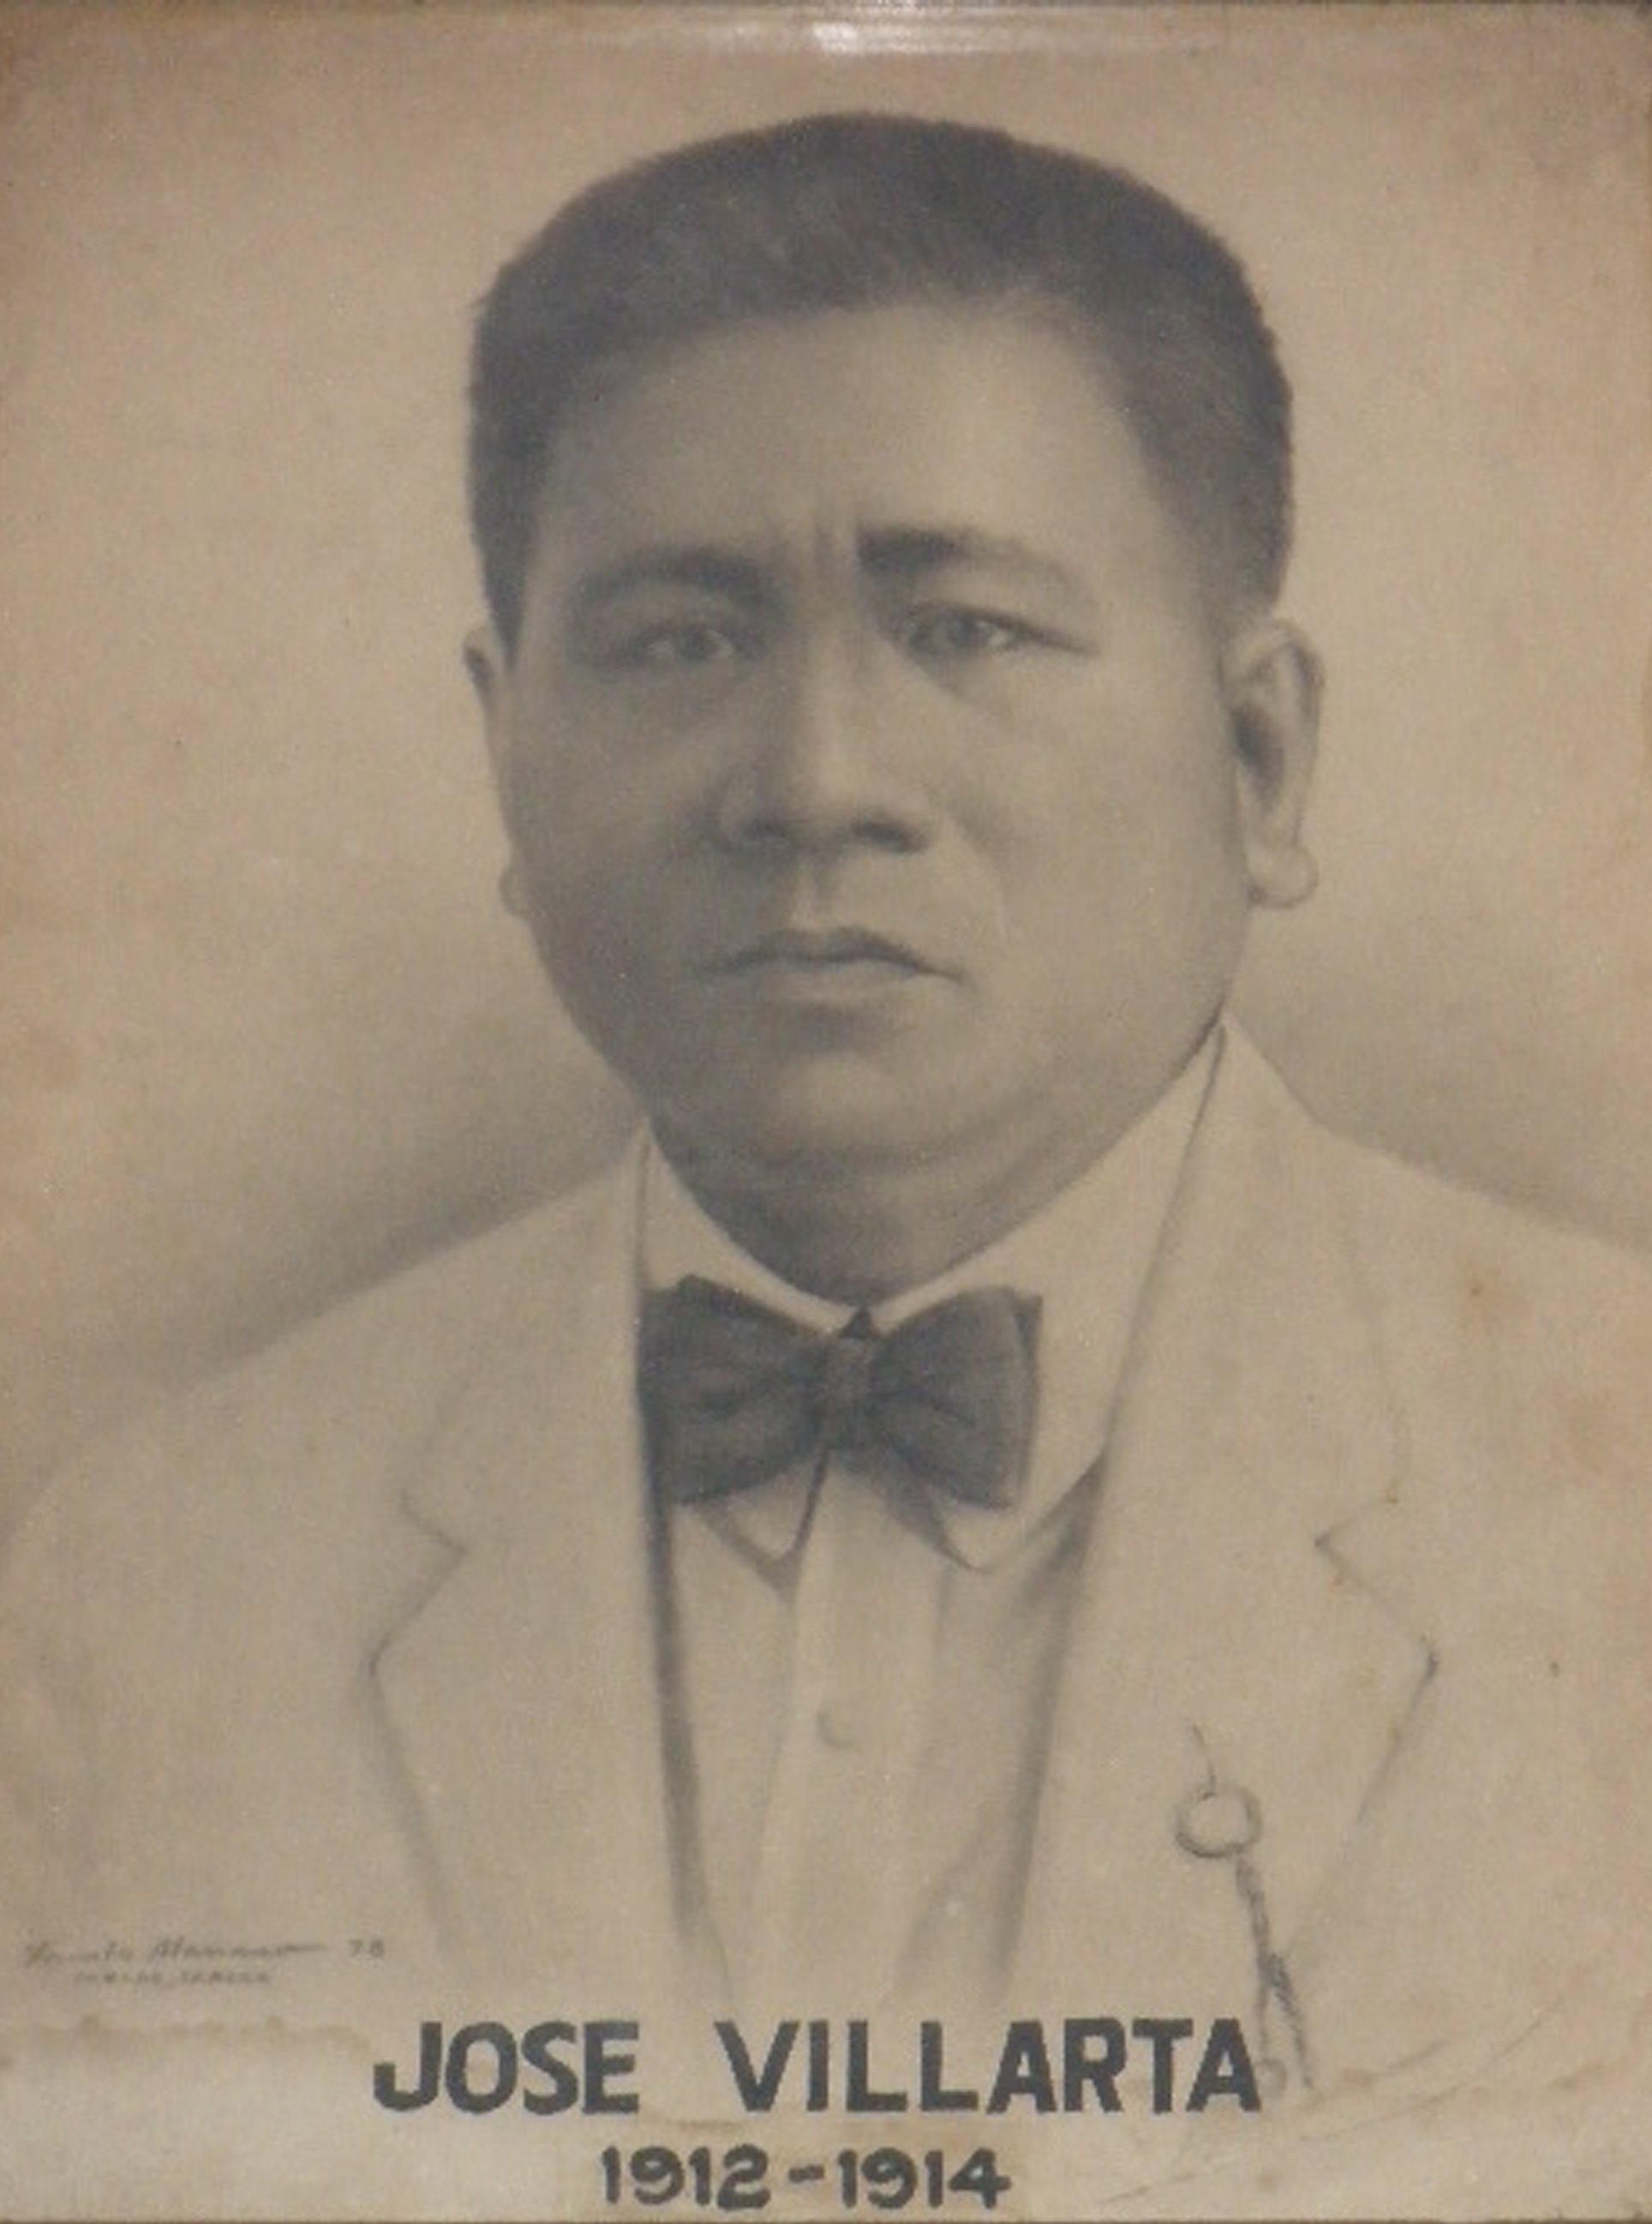 Mayor Jose Villarta (1912-1914)